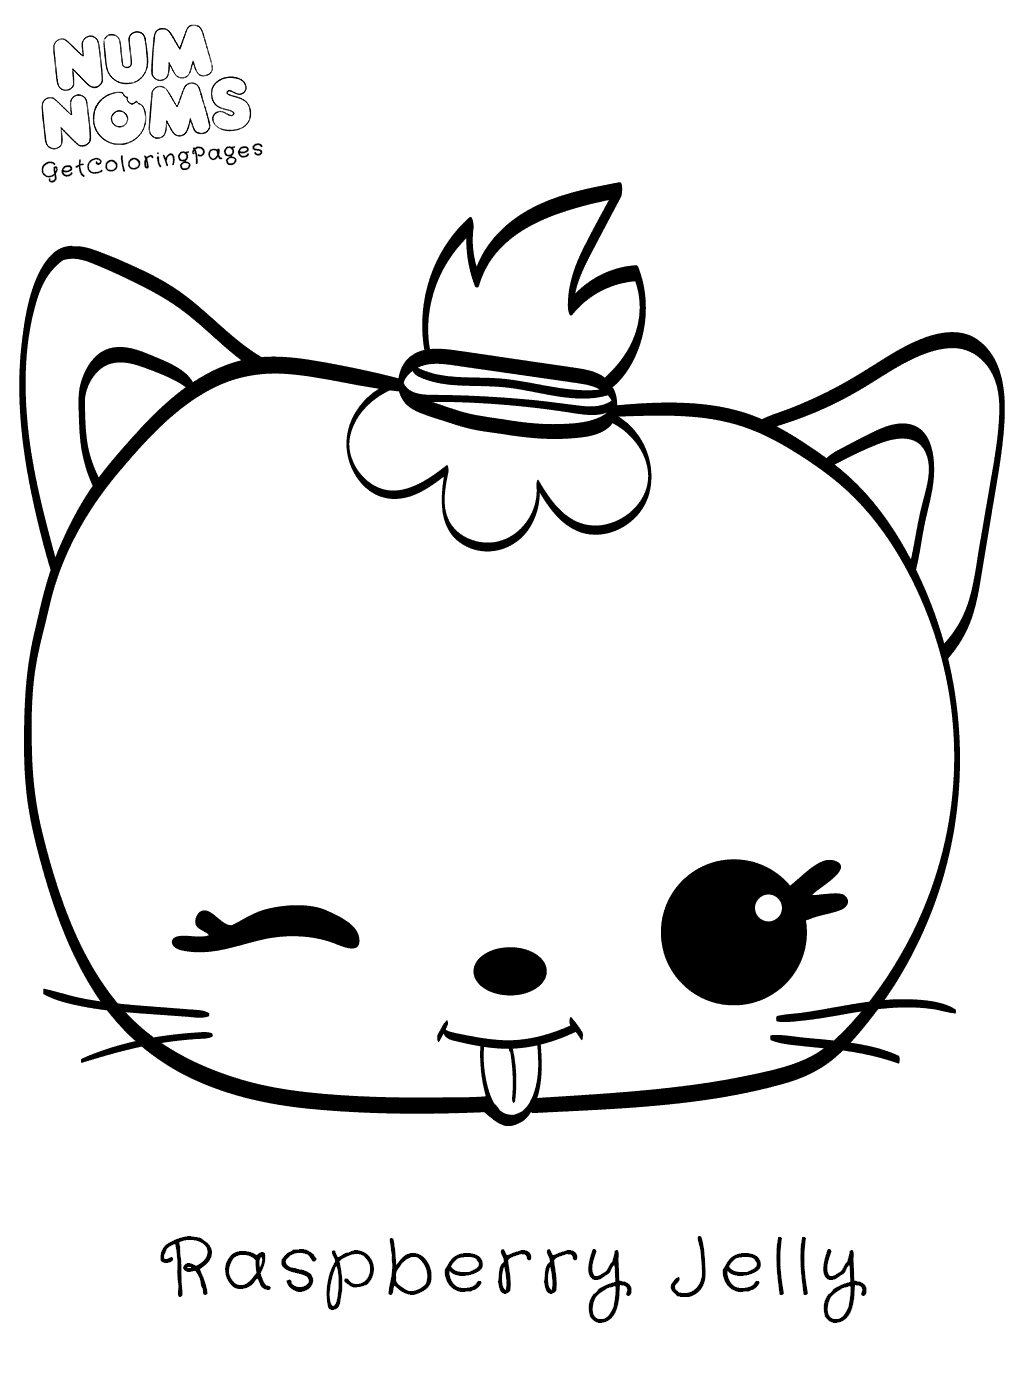 1024x1400 Num Noms Coloring Page Raspberry Jelly